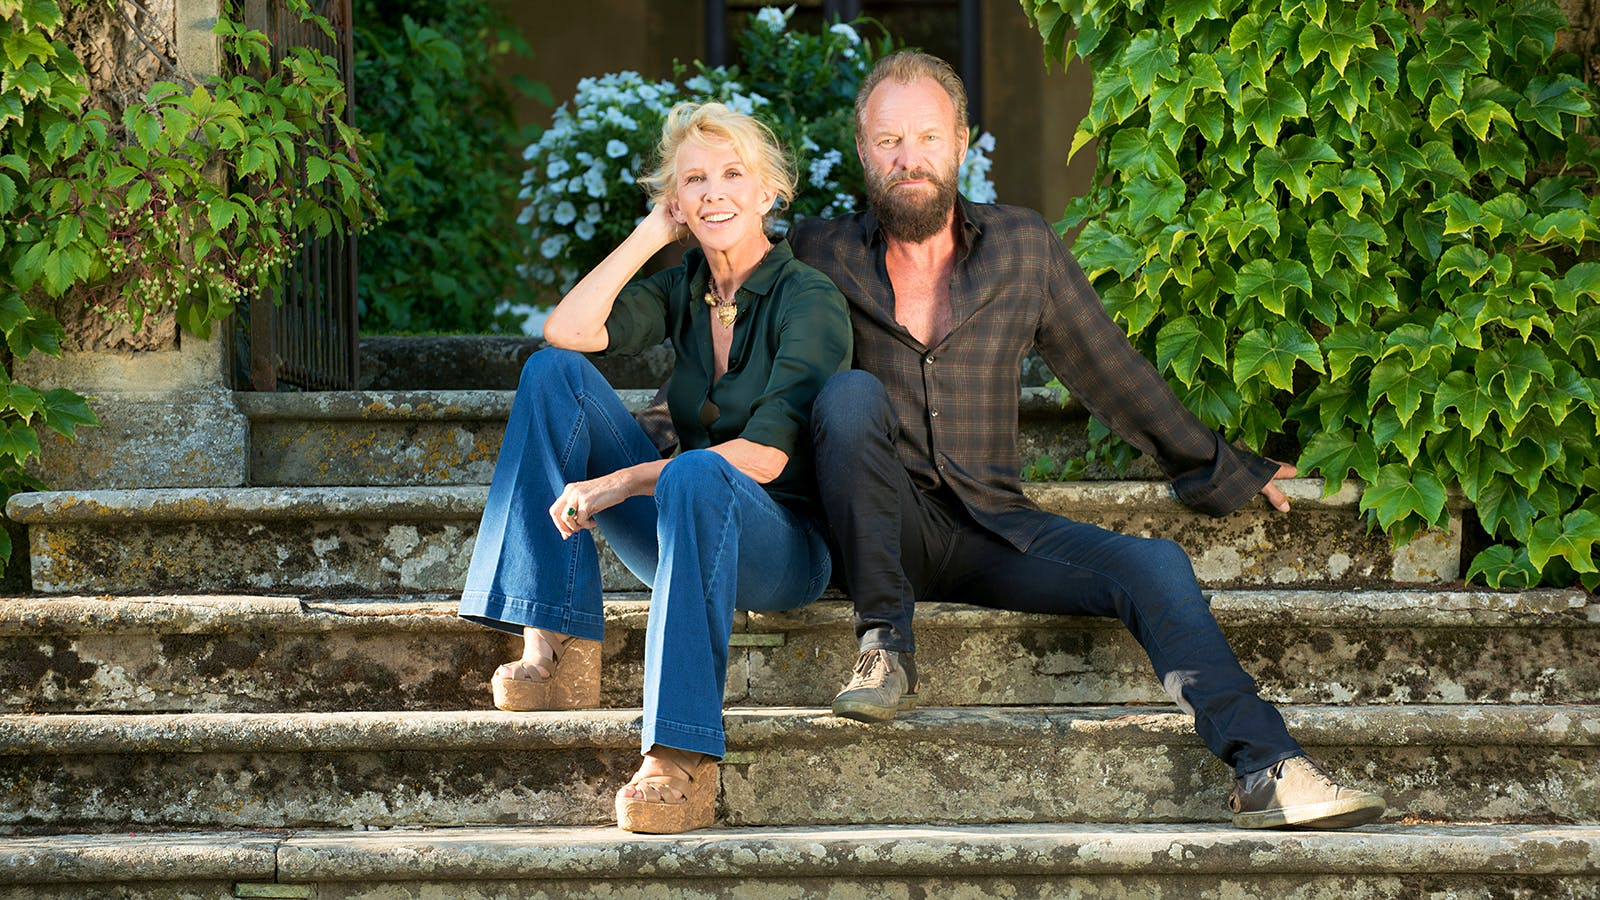 A Tuscan Winery Vacation with Sting? Southern Glazer's and Wine Spectator Raise $1.6 Million for Pandemic-Impacted Restaurant Workers in Blockbuster Auction